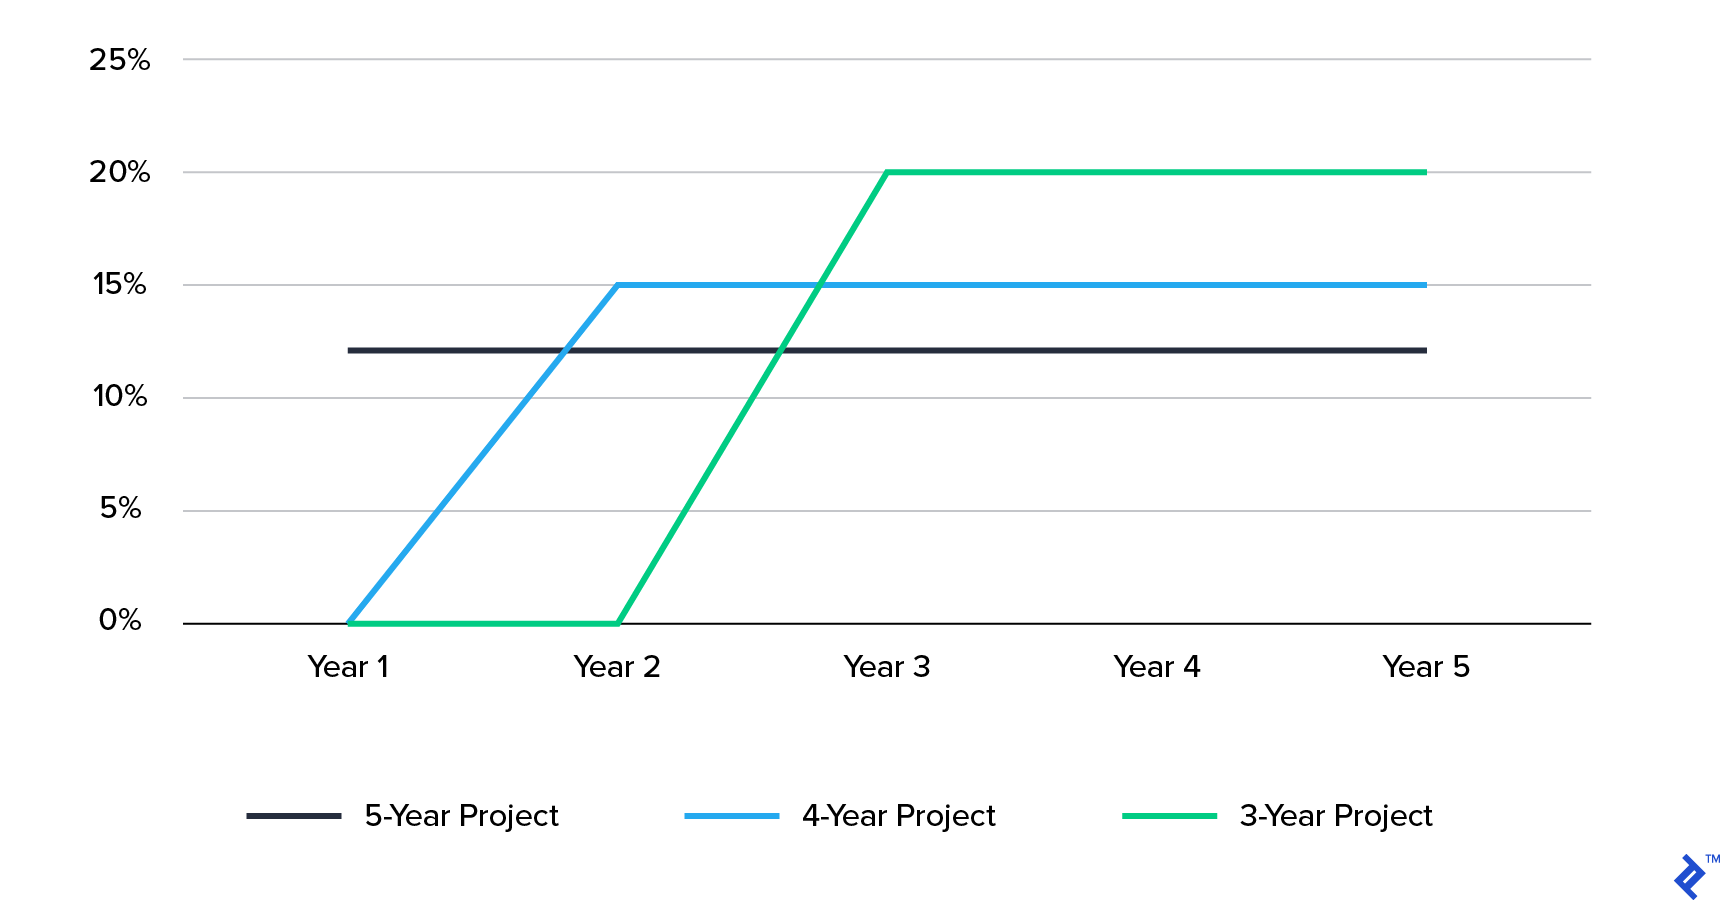 Annual Returns Required to Reach a 12% IRR Depending on Project Length